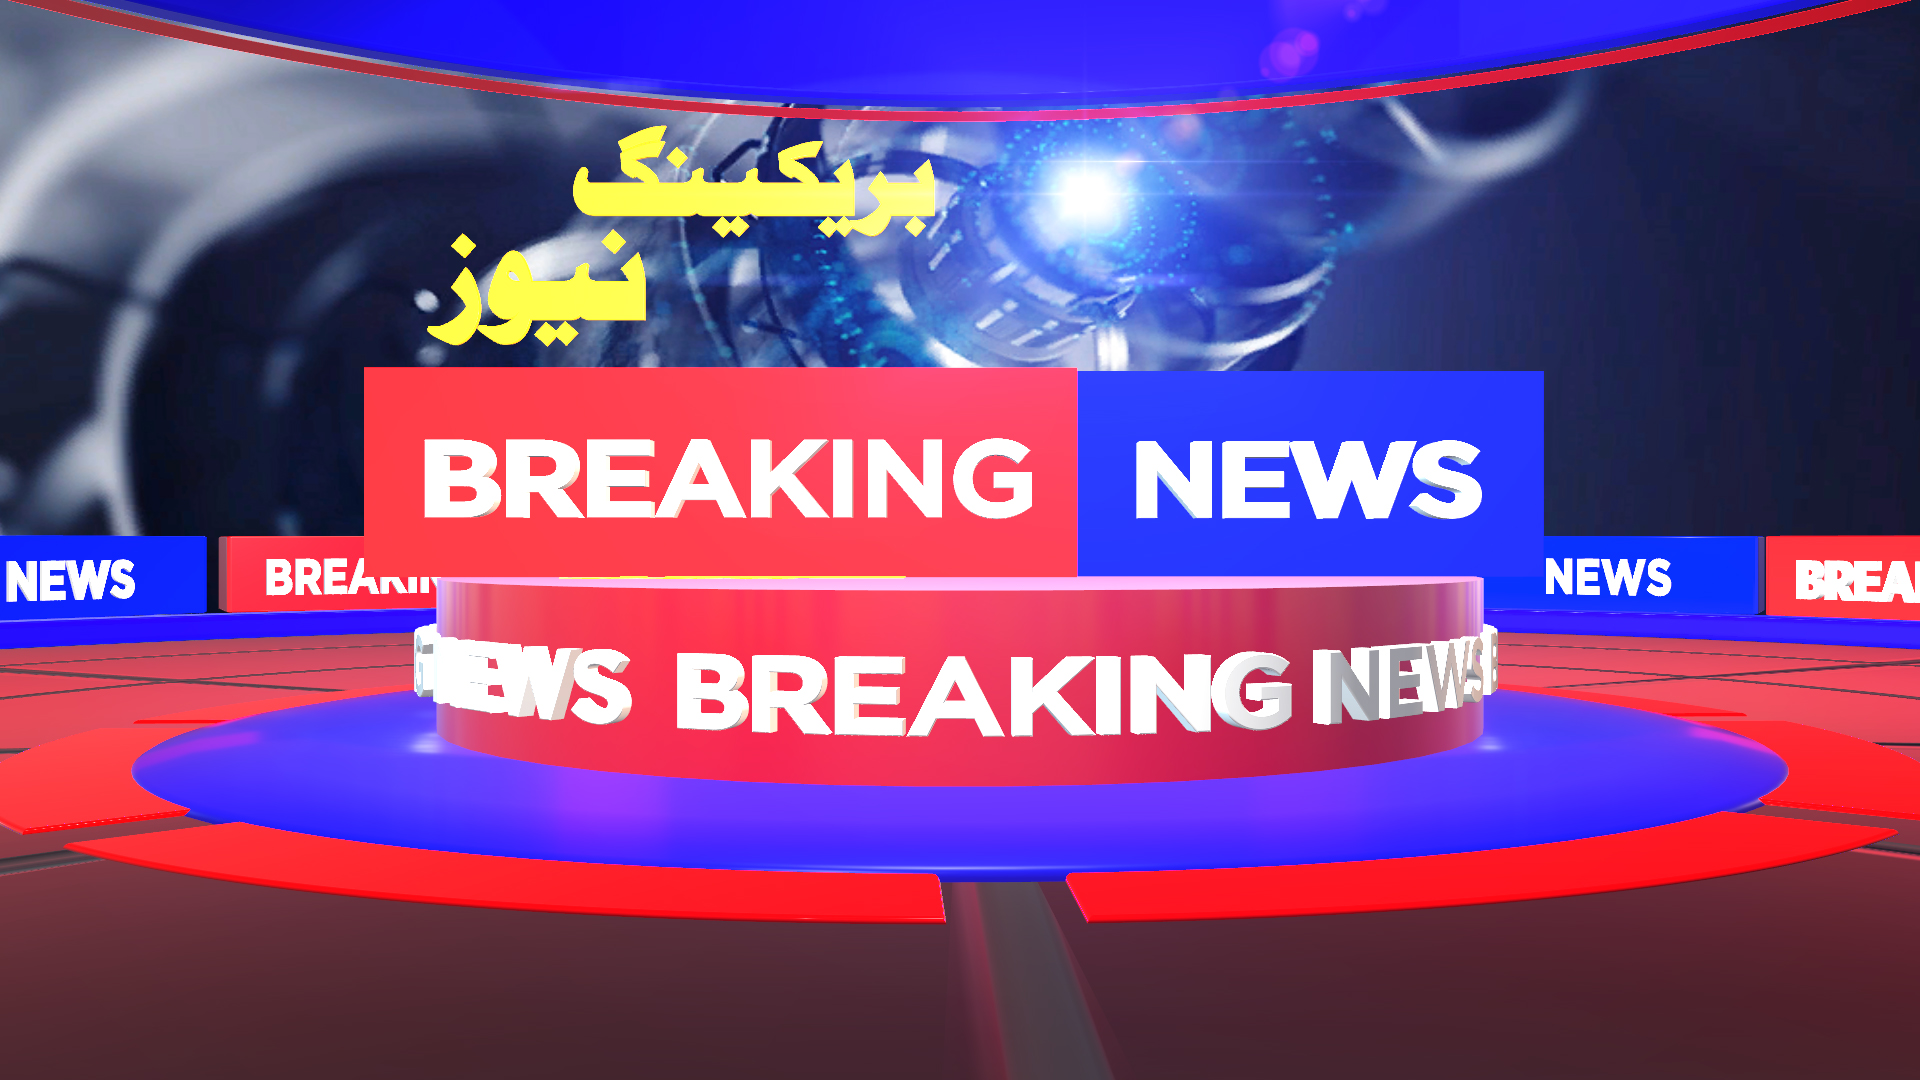 Breaking news animation